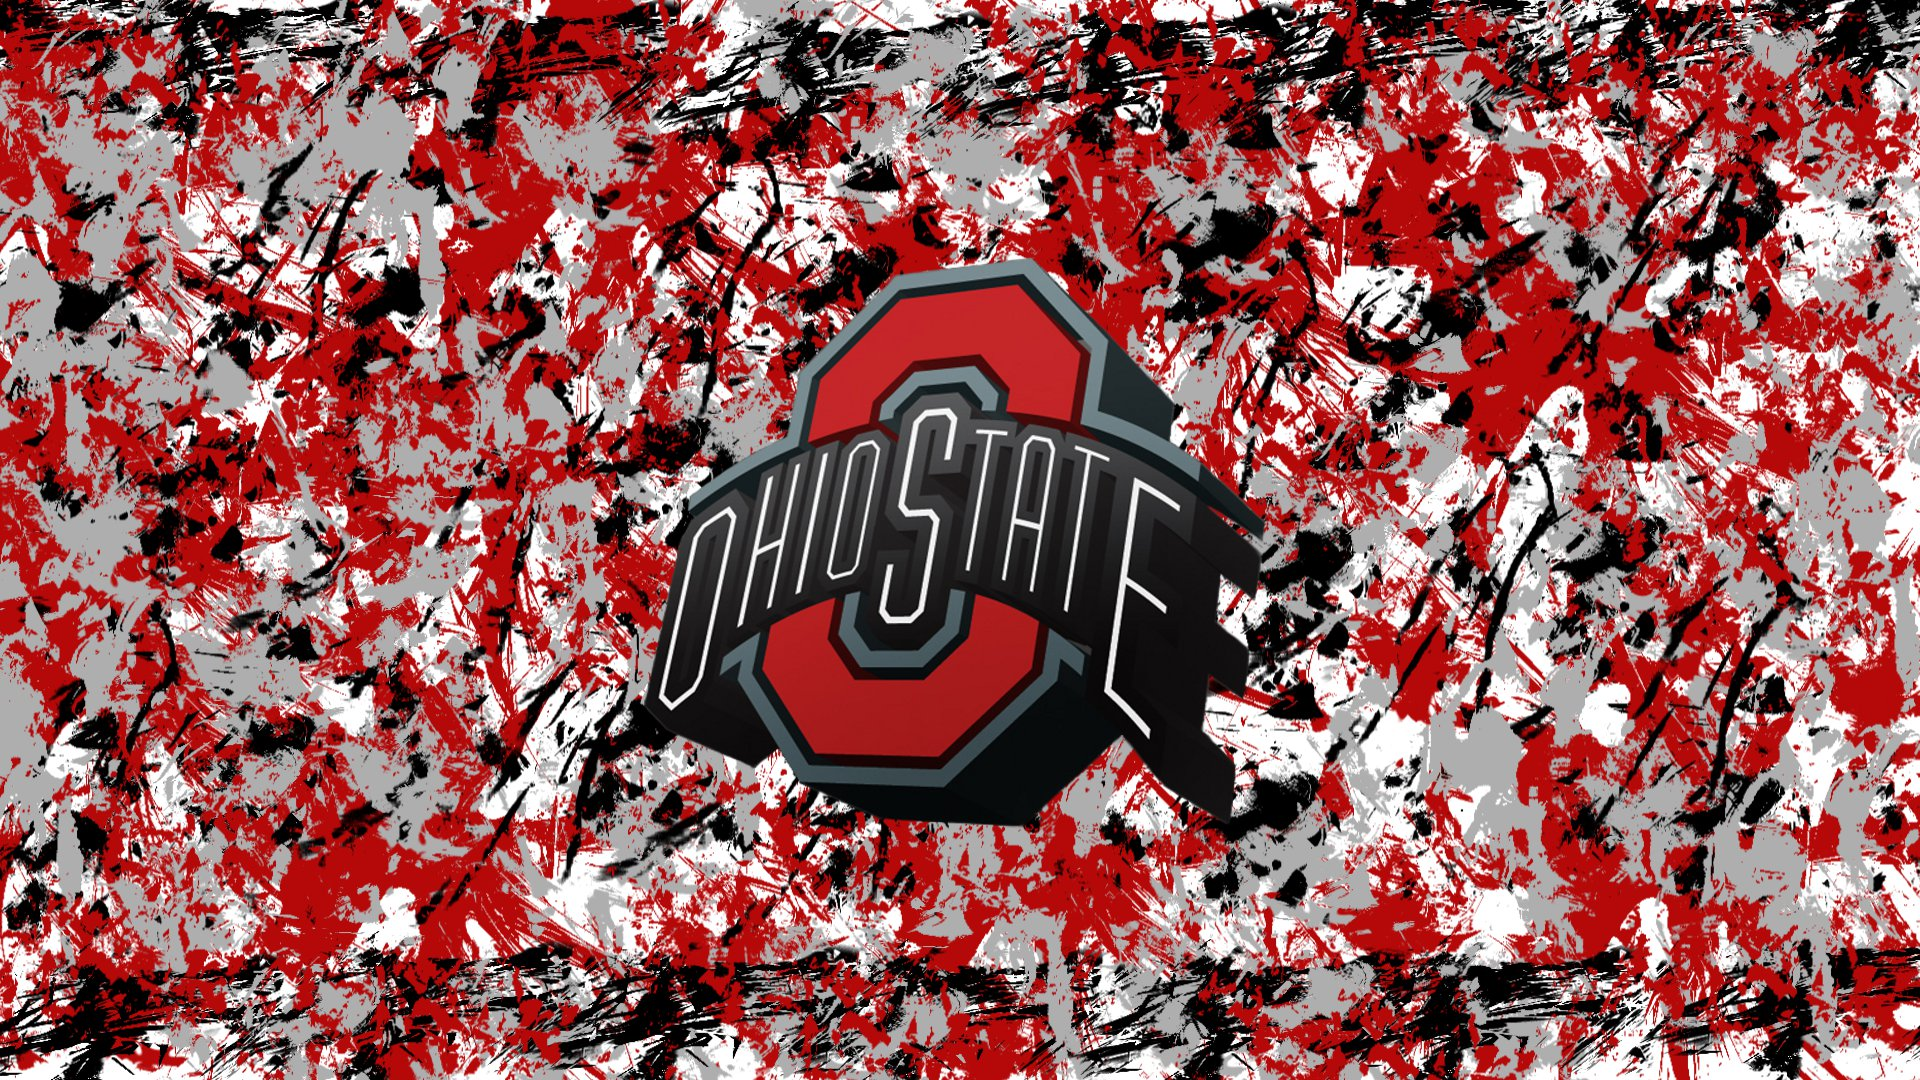 OHIO STATE BUCKEYES college football 19 wallpaper background 1920x1080